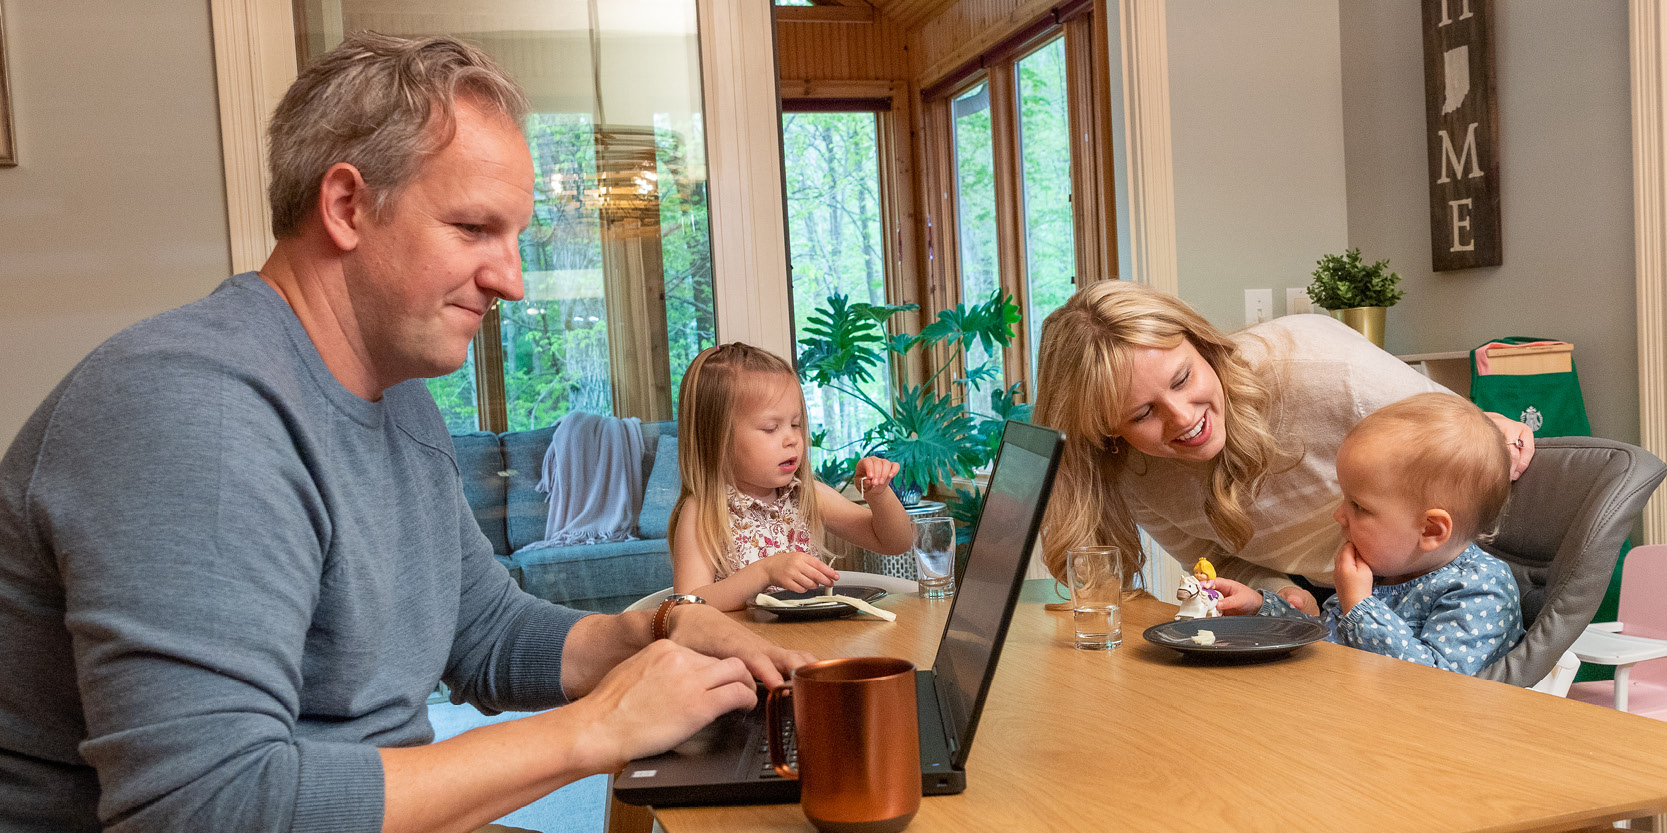 Purdue College of Liberal Arts advisor Josh Dexter-Wiens typically looked after daughters Luca and Remy during the day while wife Johnna managed Protect Purdue communications efforts, then caught up on his advising work in the evenings.